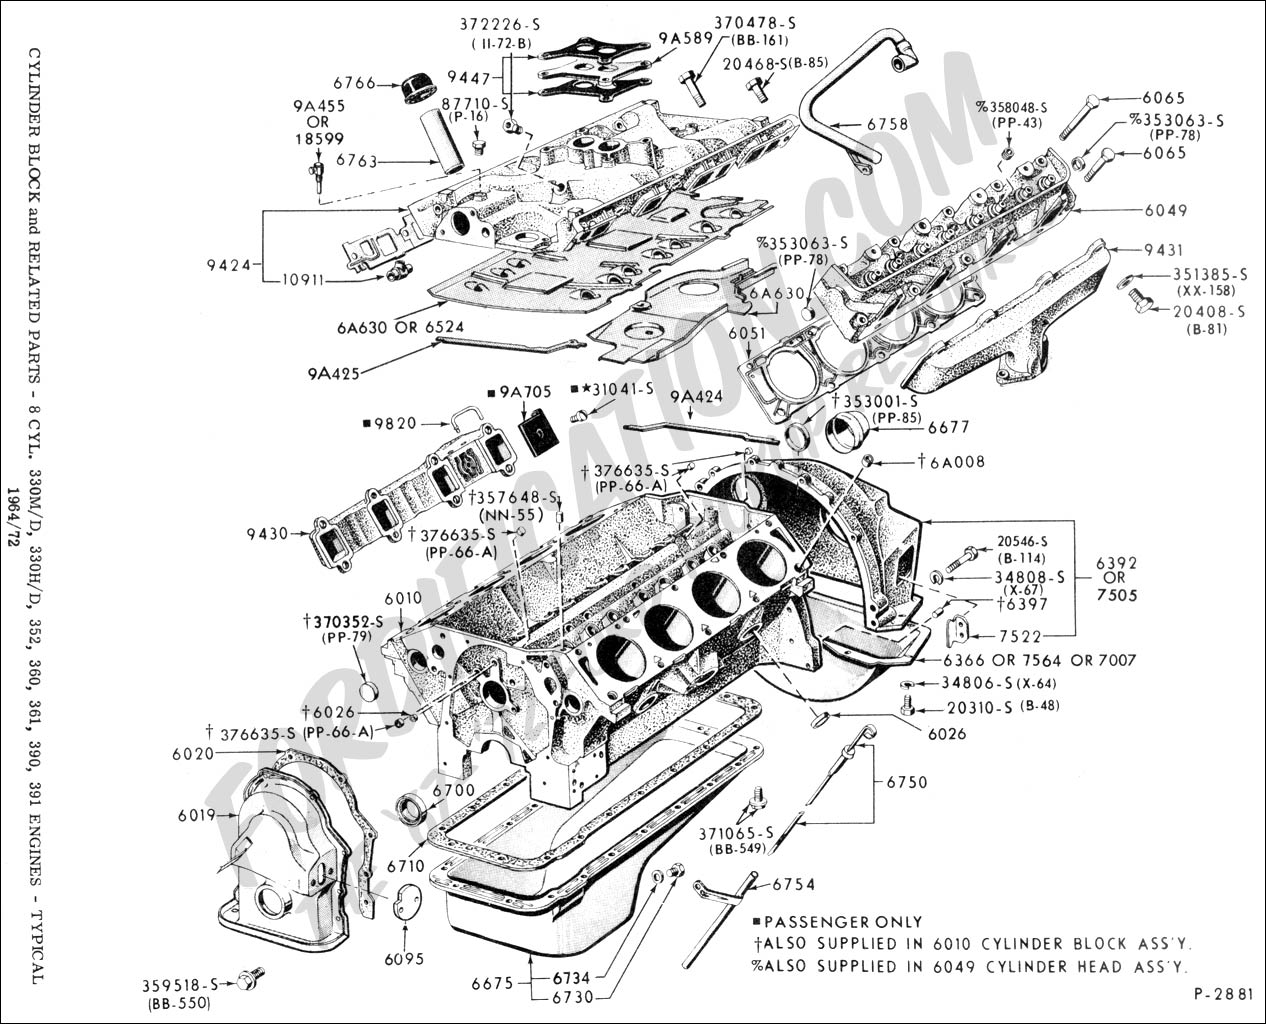 Ford 460 Engine Exploded View